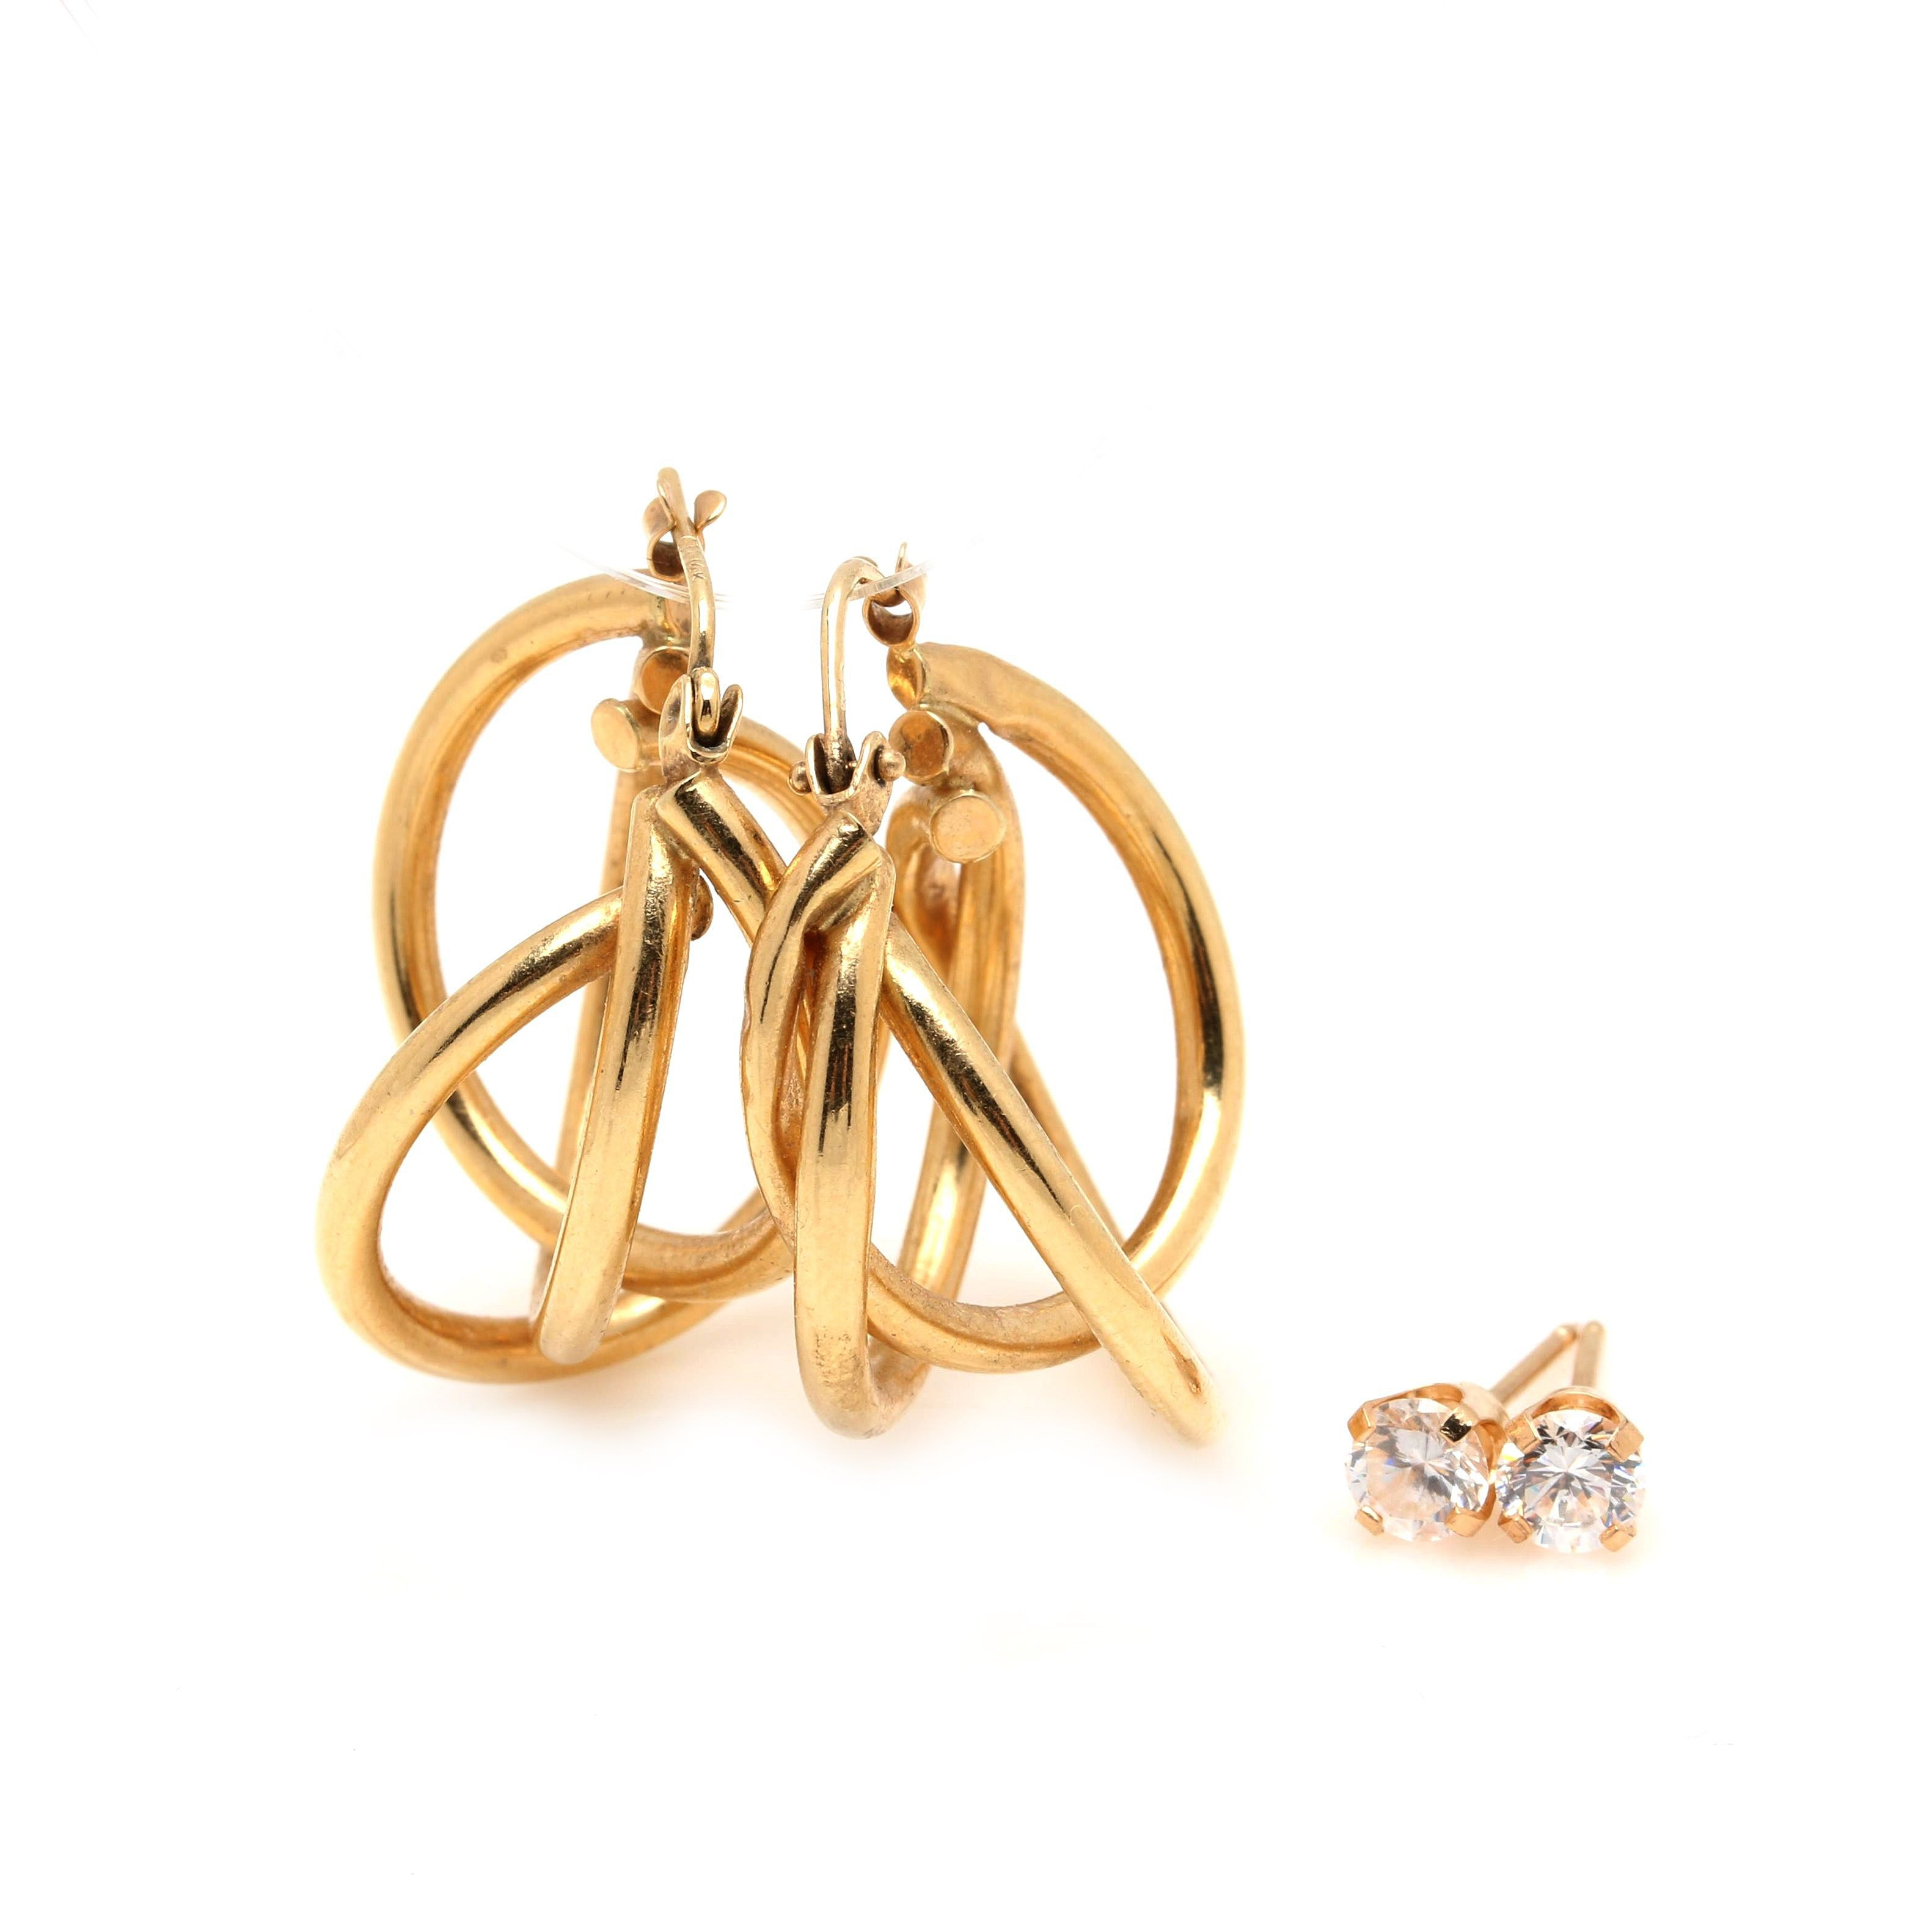 10K and 14K Yellow Gold Earrings